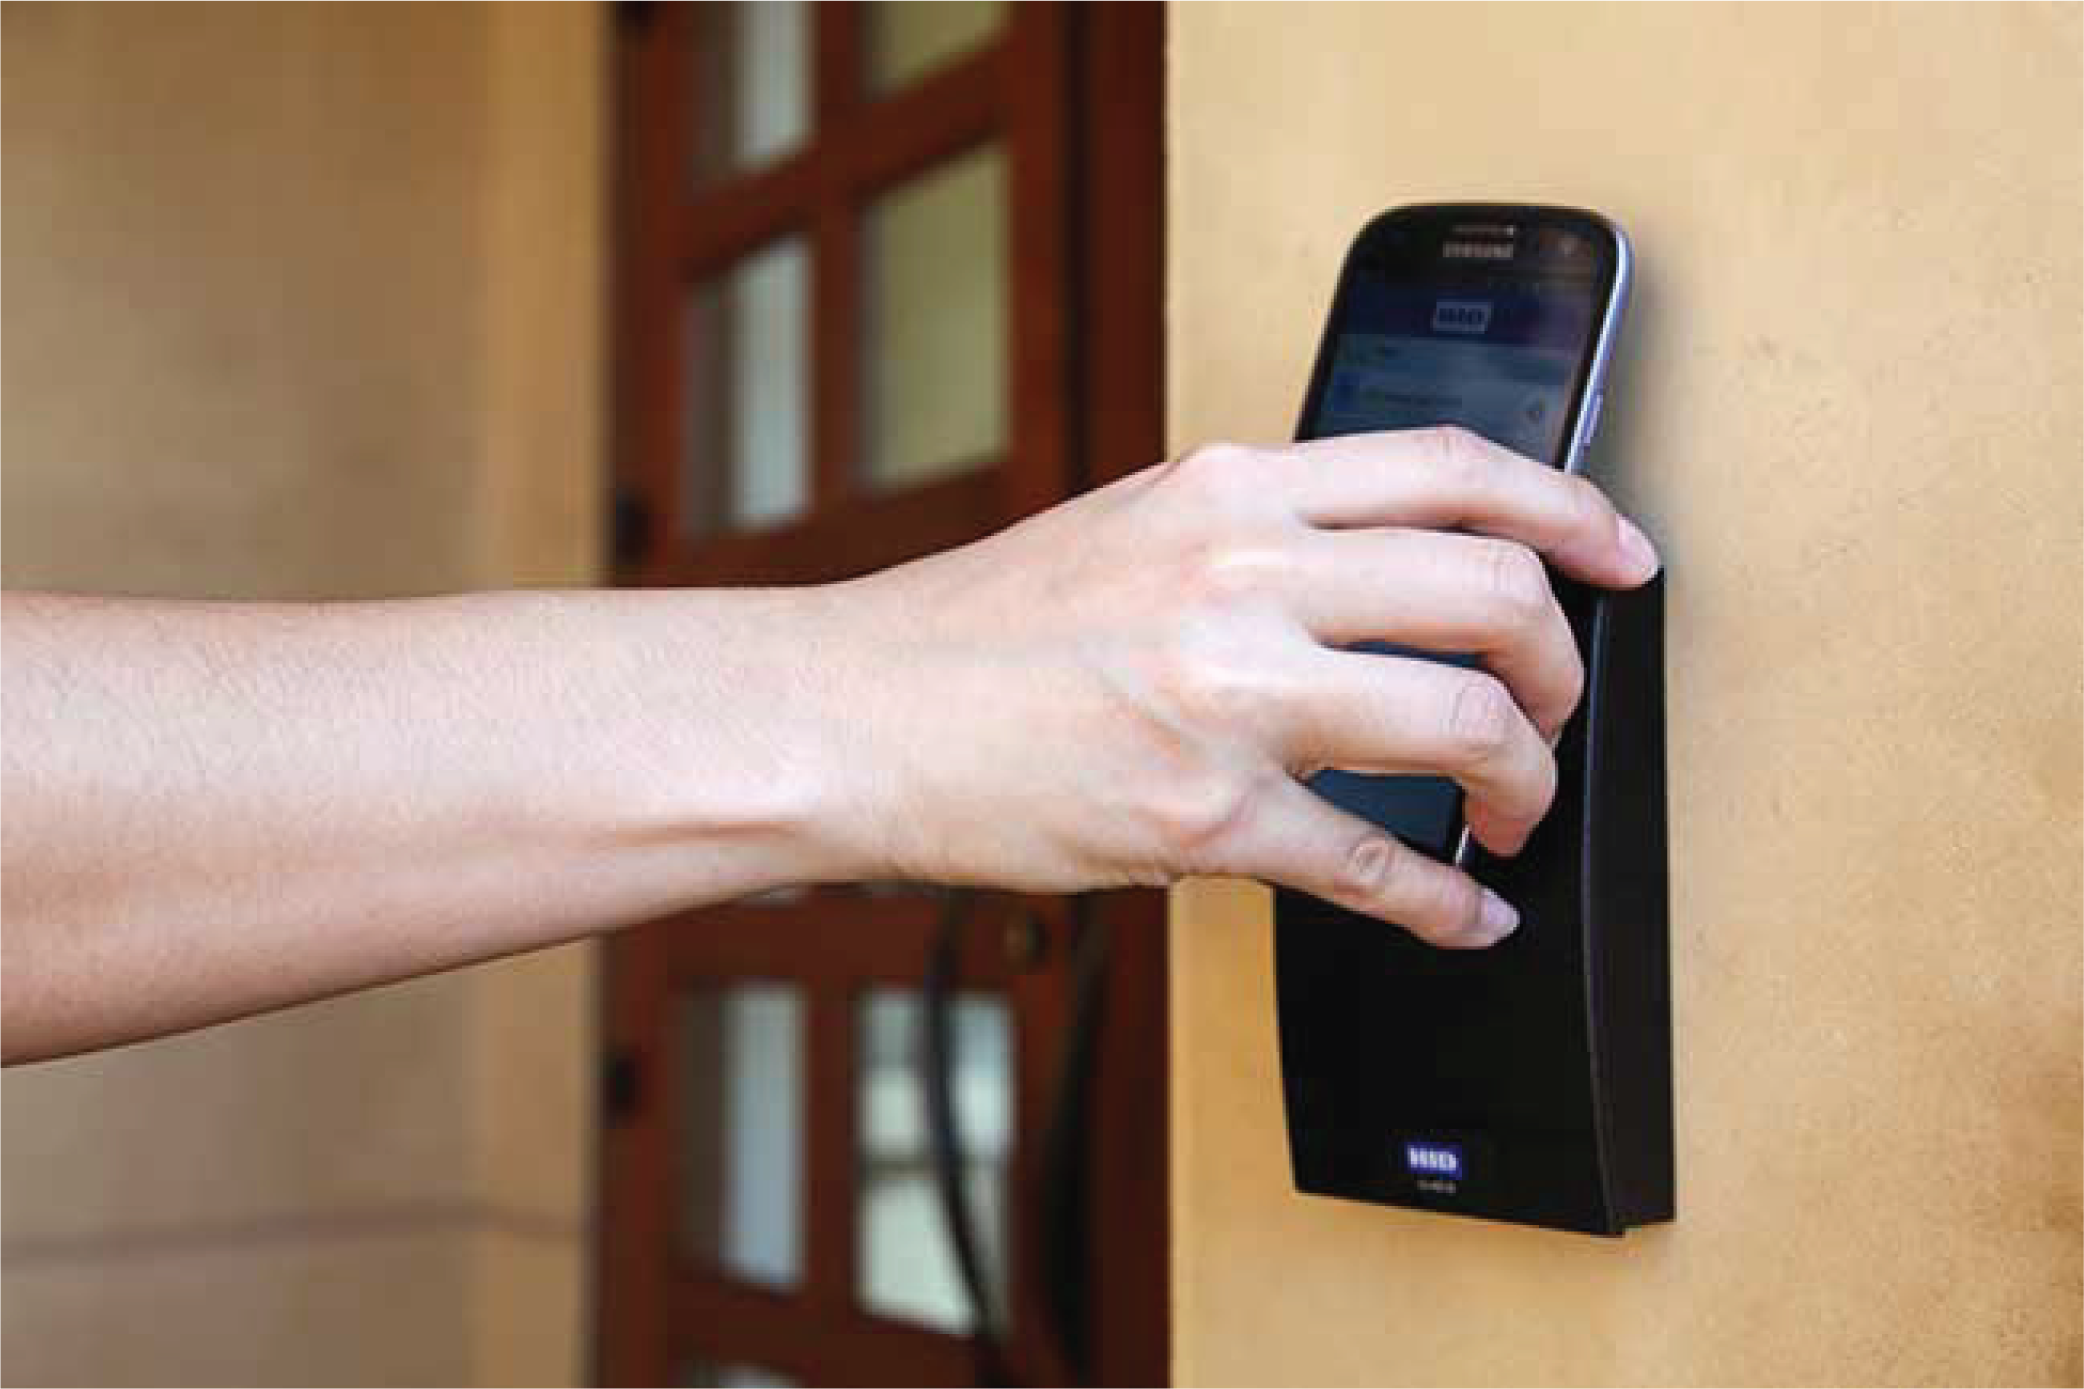 Electronic Access Control - Remotely lock or unlock your doors from your phone, give family members individual access codes, and get notifications whenever a door is accidentally left unlocked.